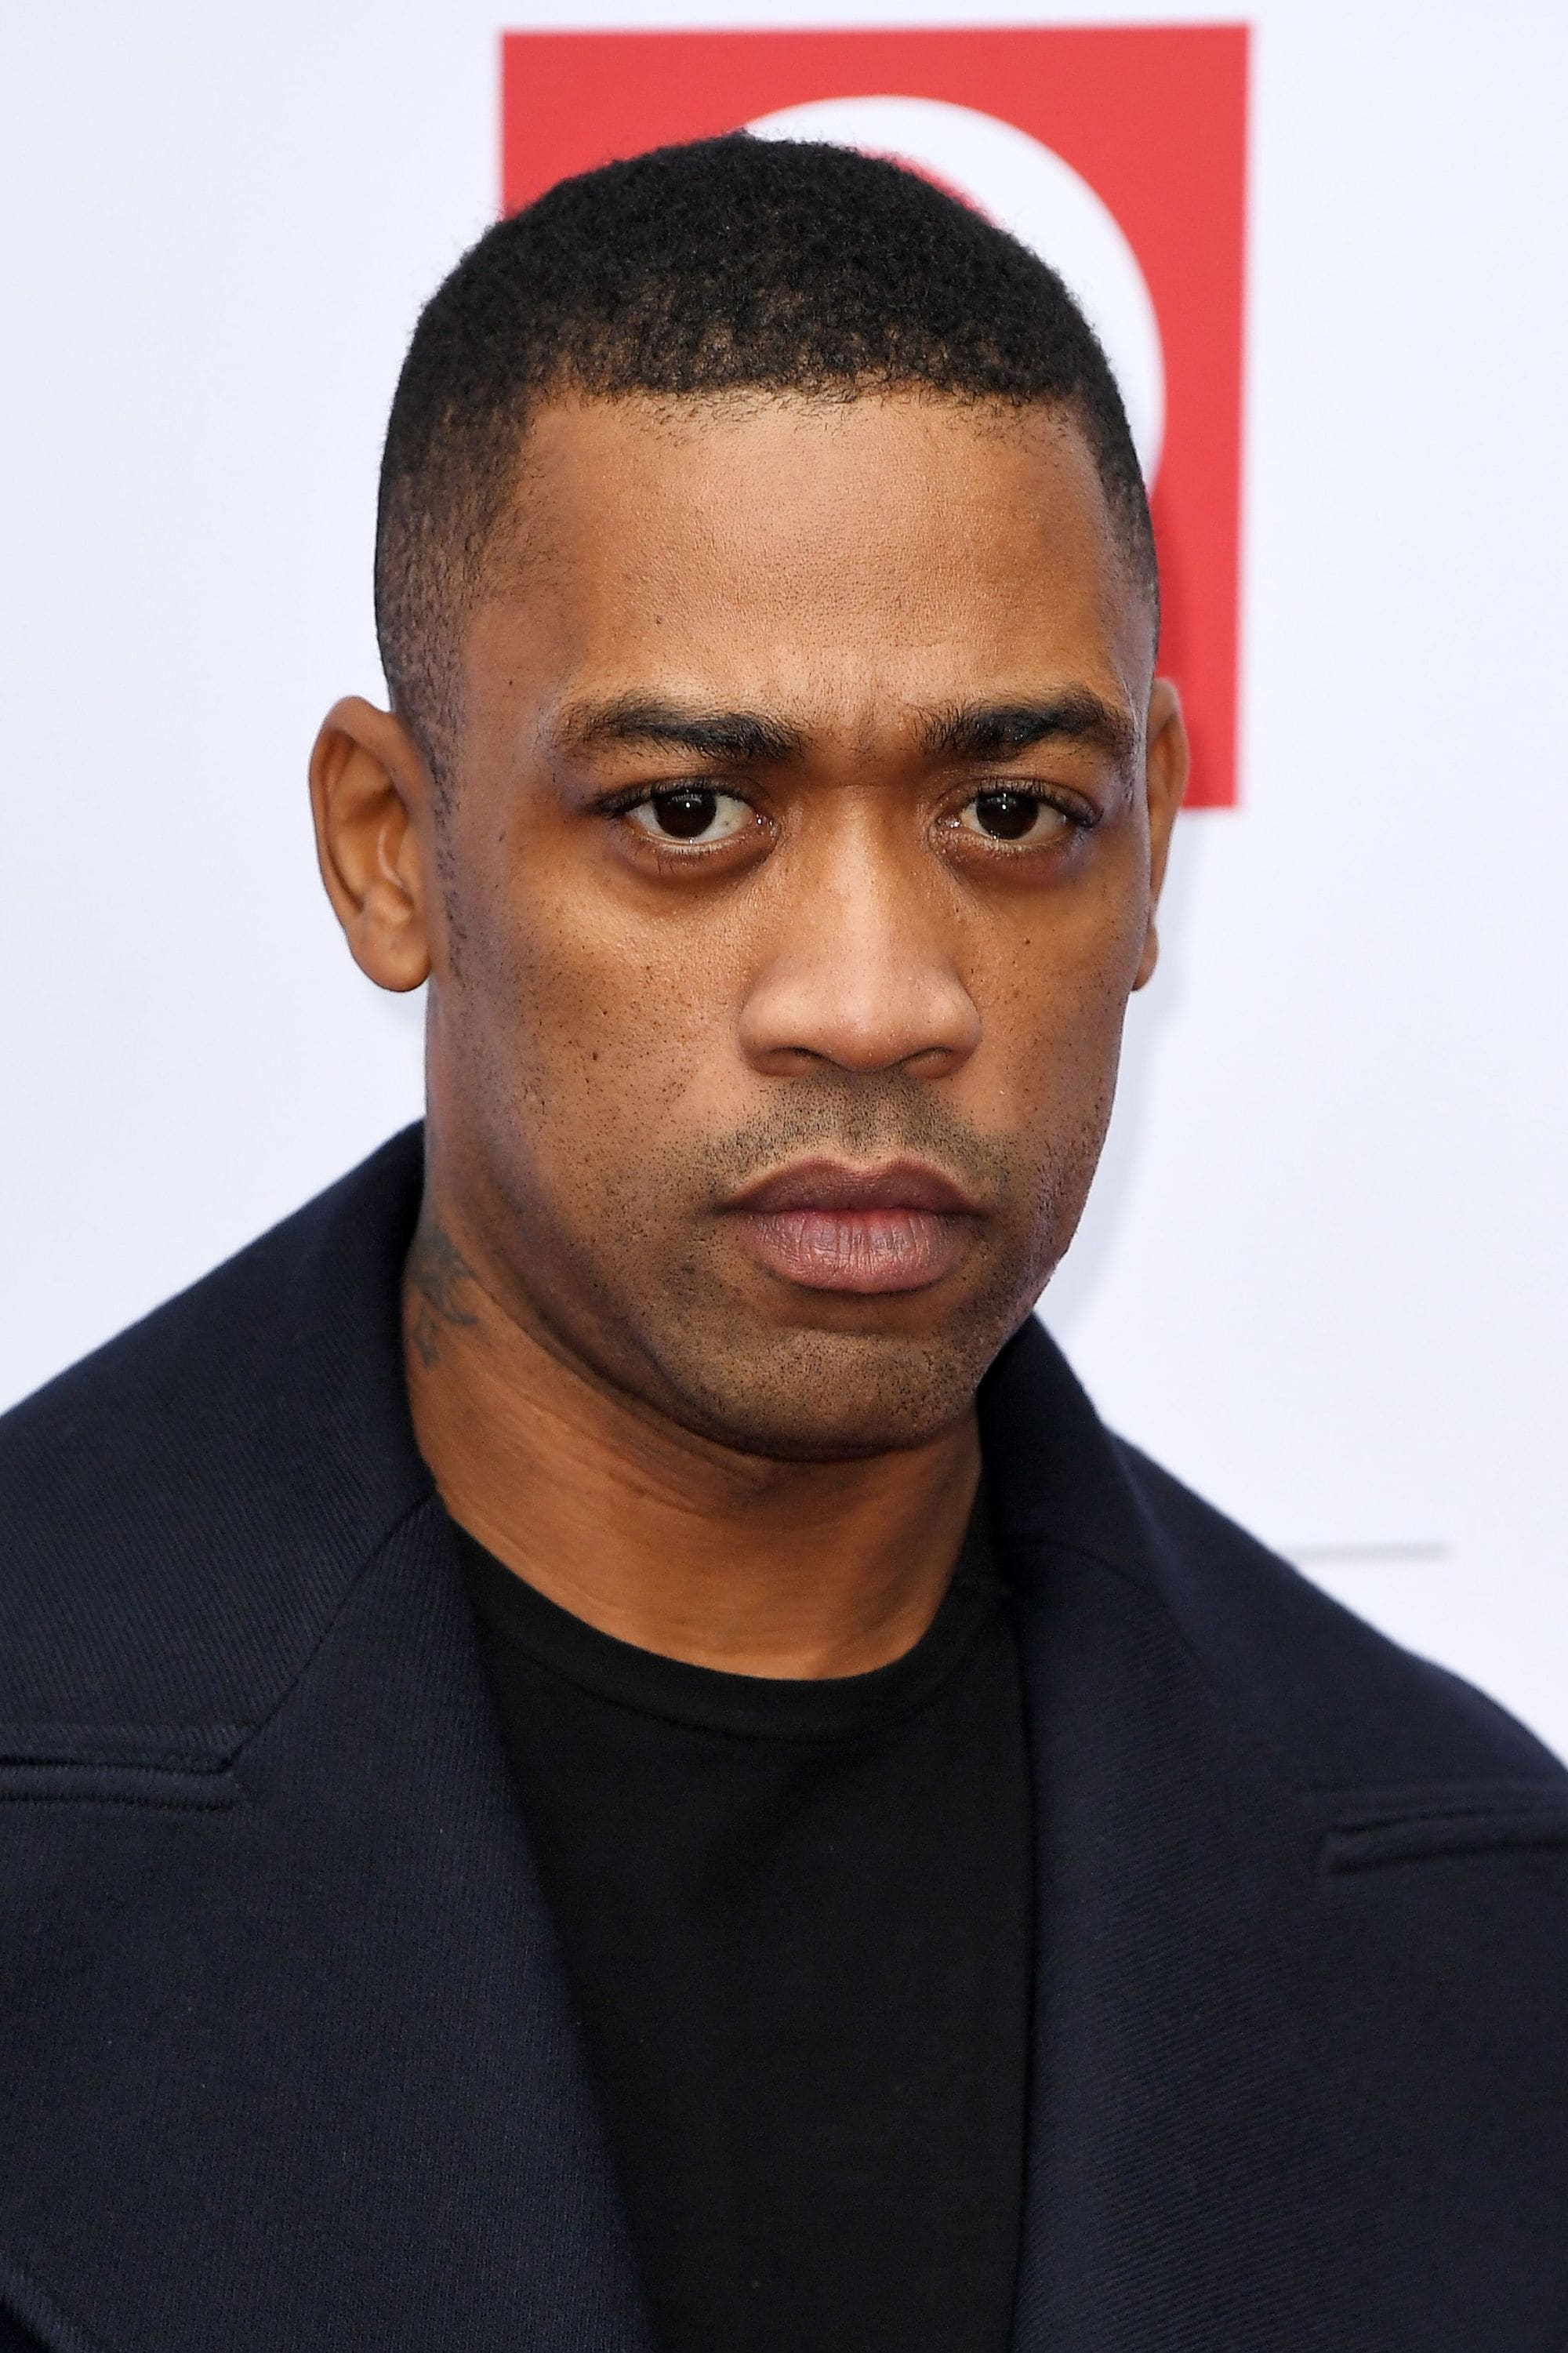 Wiley with tapper fade shaved haircut